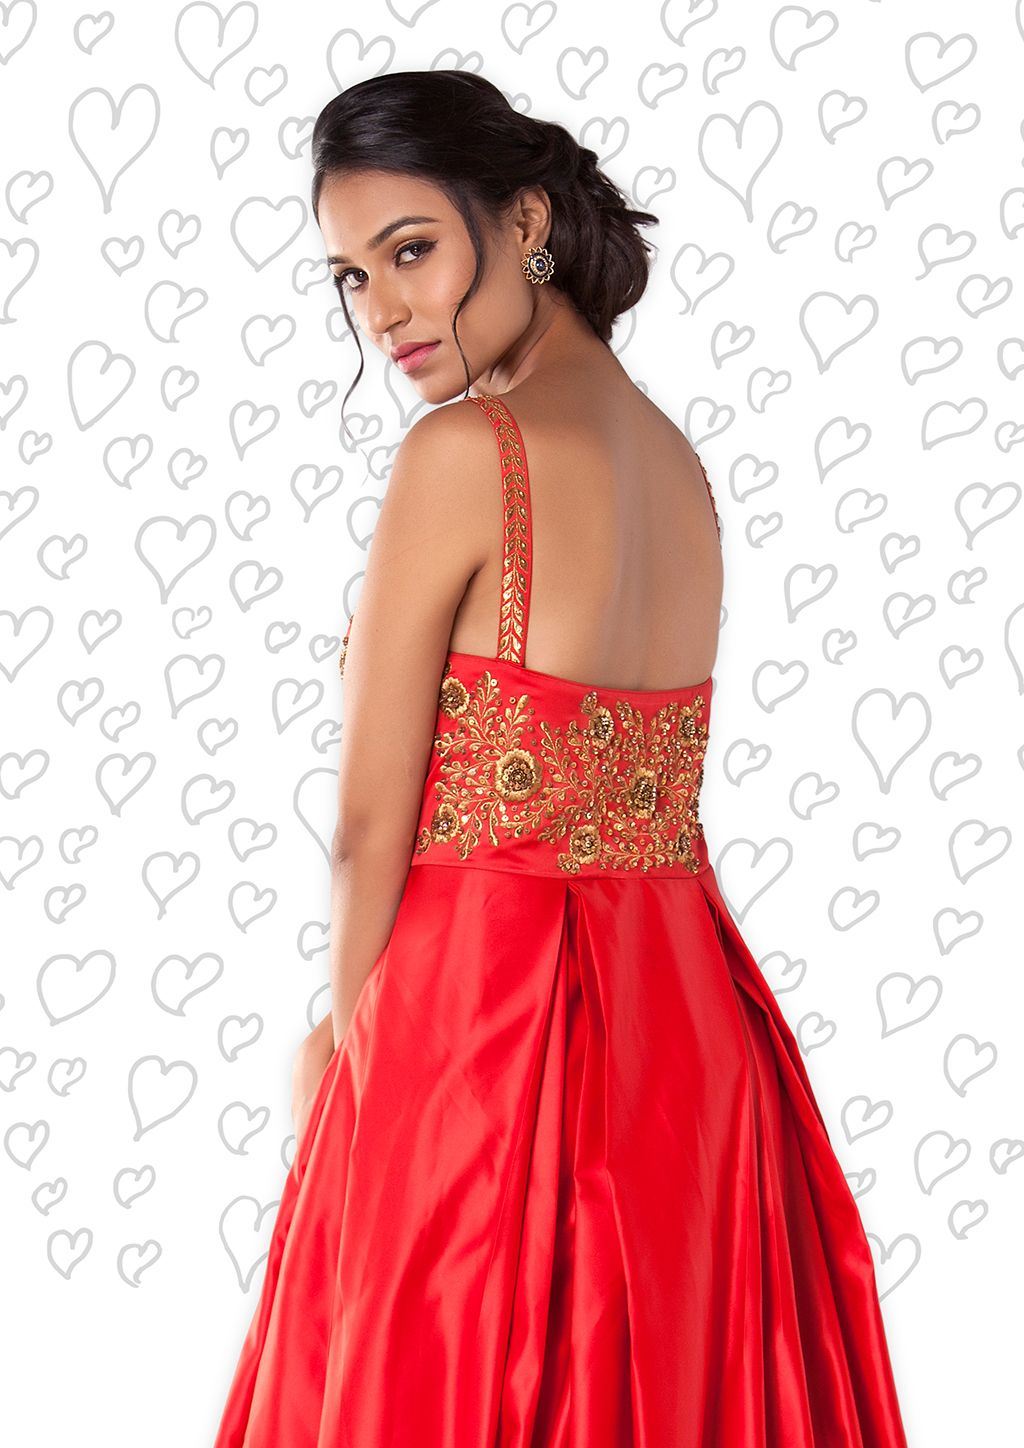 db1f945e8cb8 Cherry Red Evening Gown With Zari, Sequence And Pearl Work. #zenfashions  call for order - +91 9987244208 #cherry #red #wedding #evening #gown  #embroidery ...